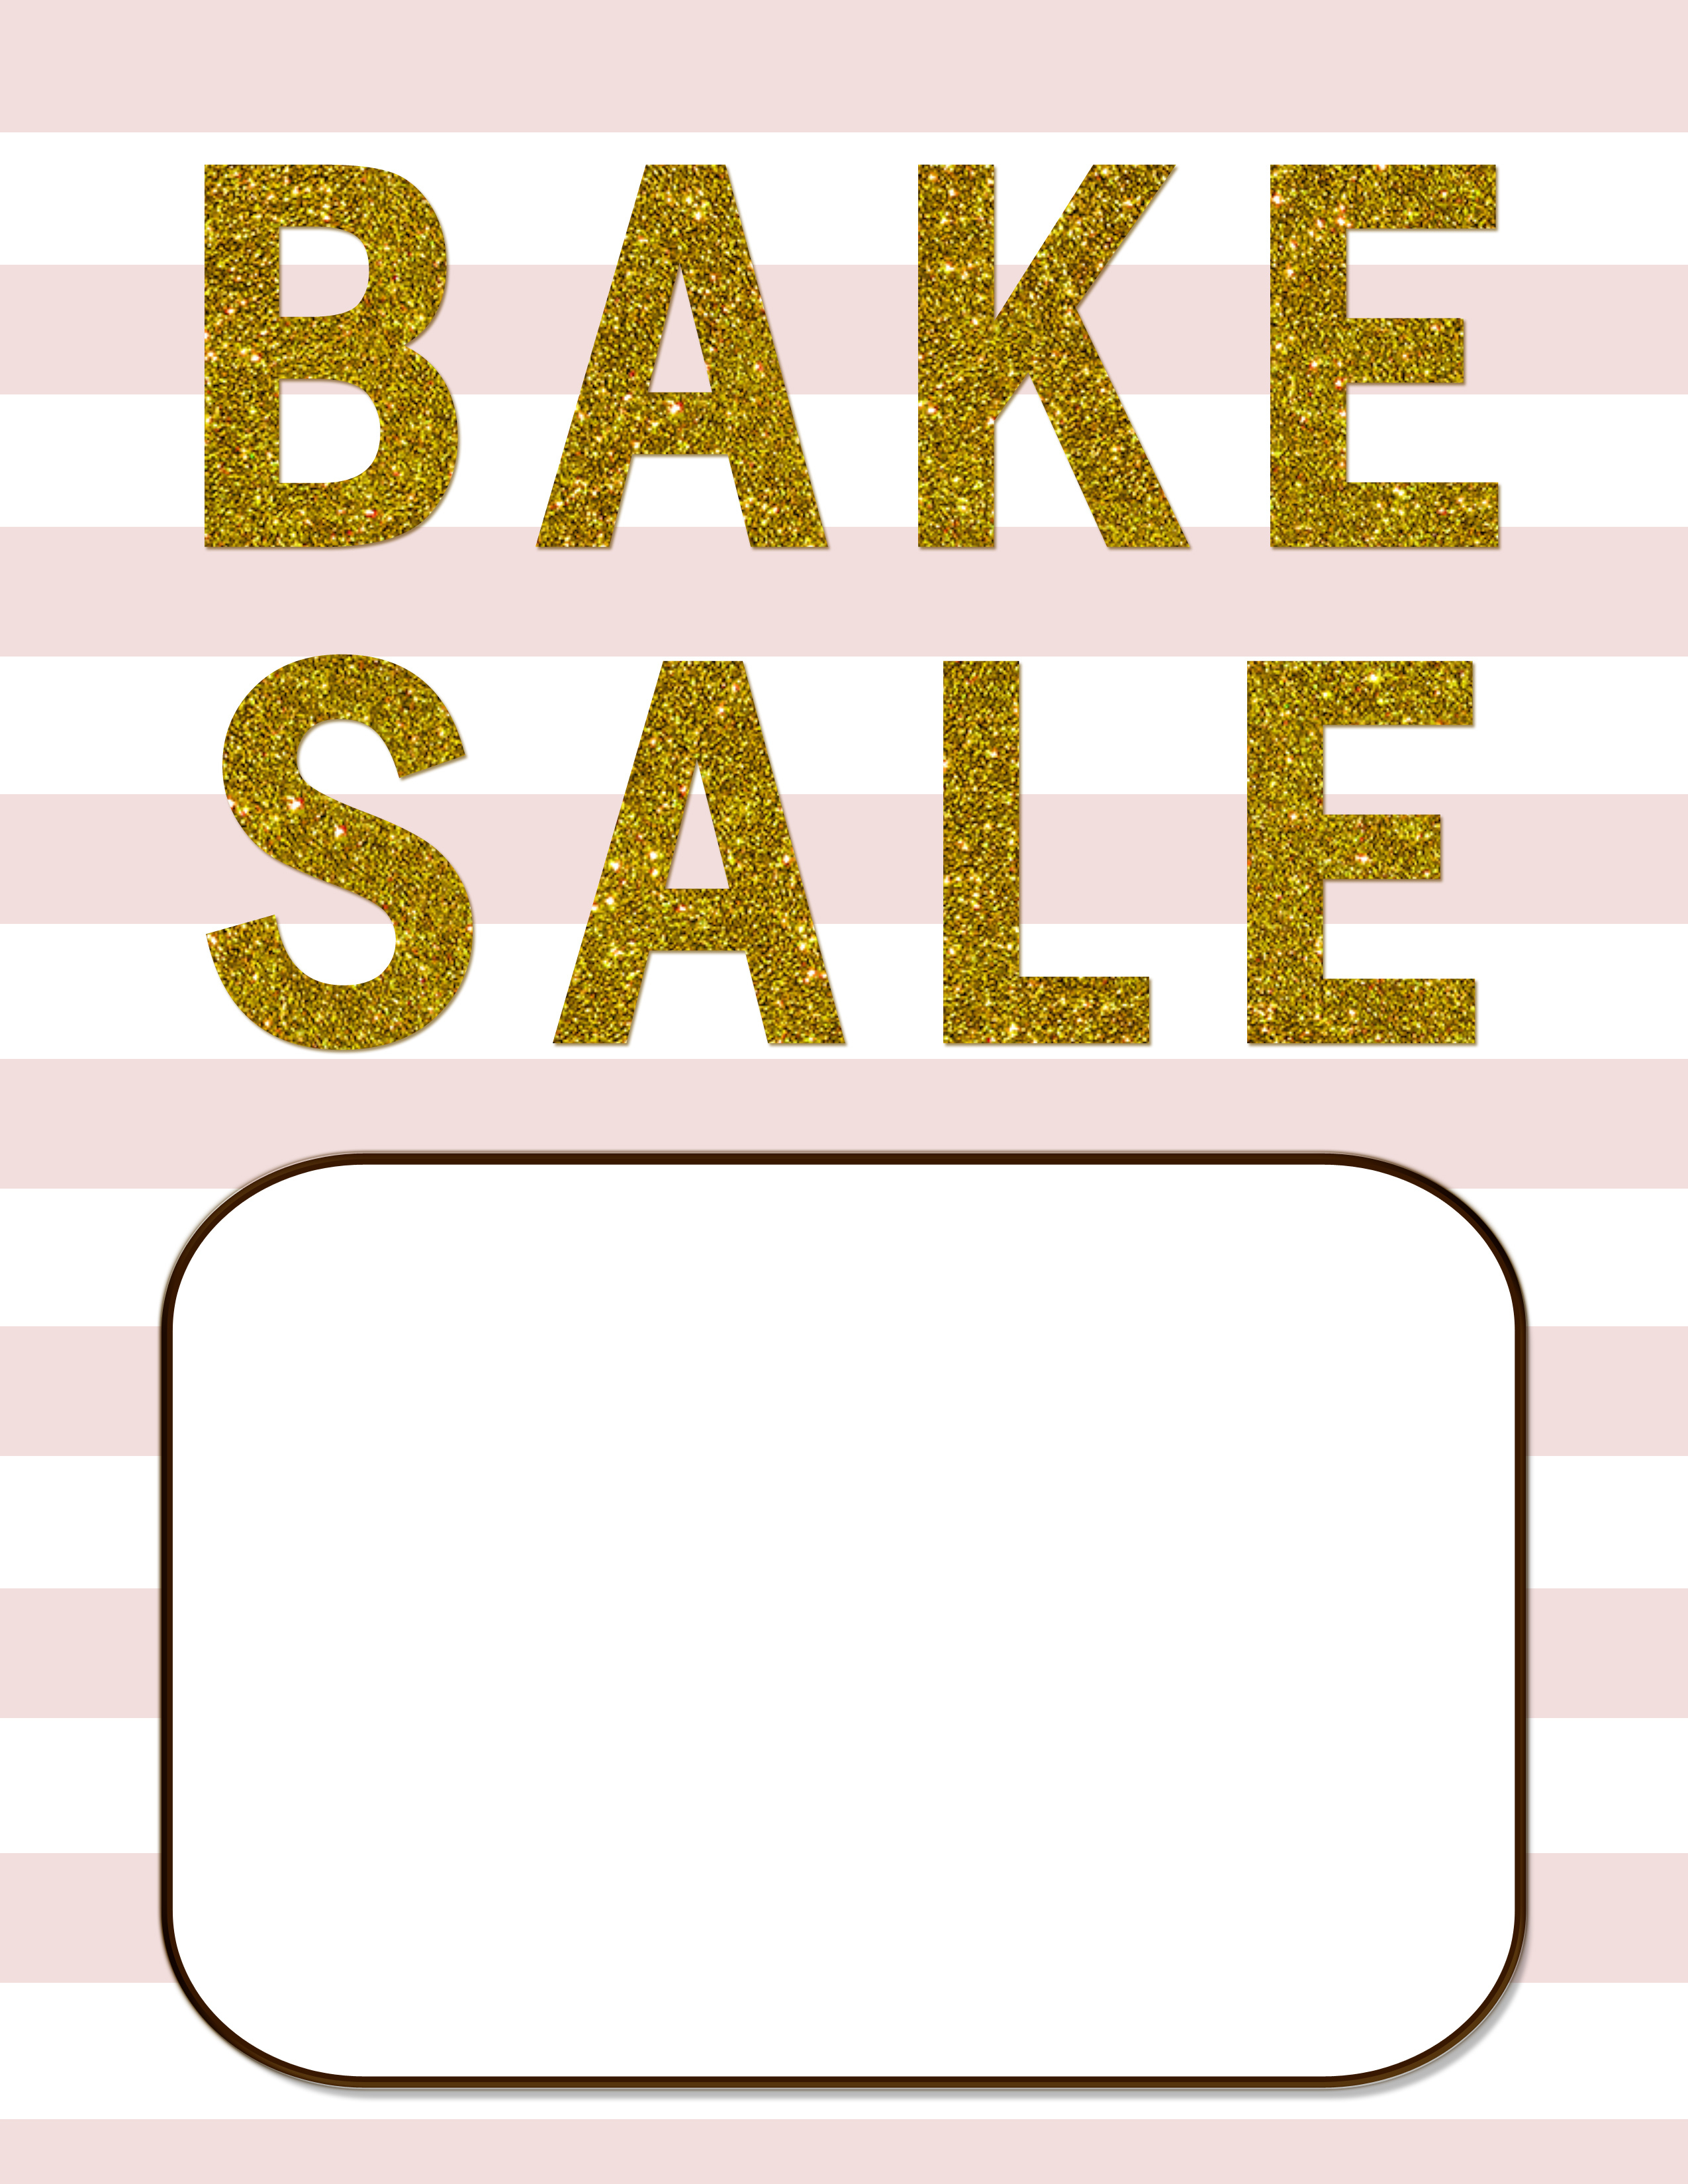 Bake Sale Flyers – Free Flyer Designs - Create Free Printable Flyer